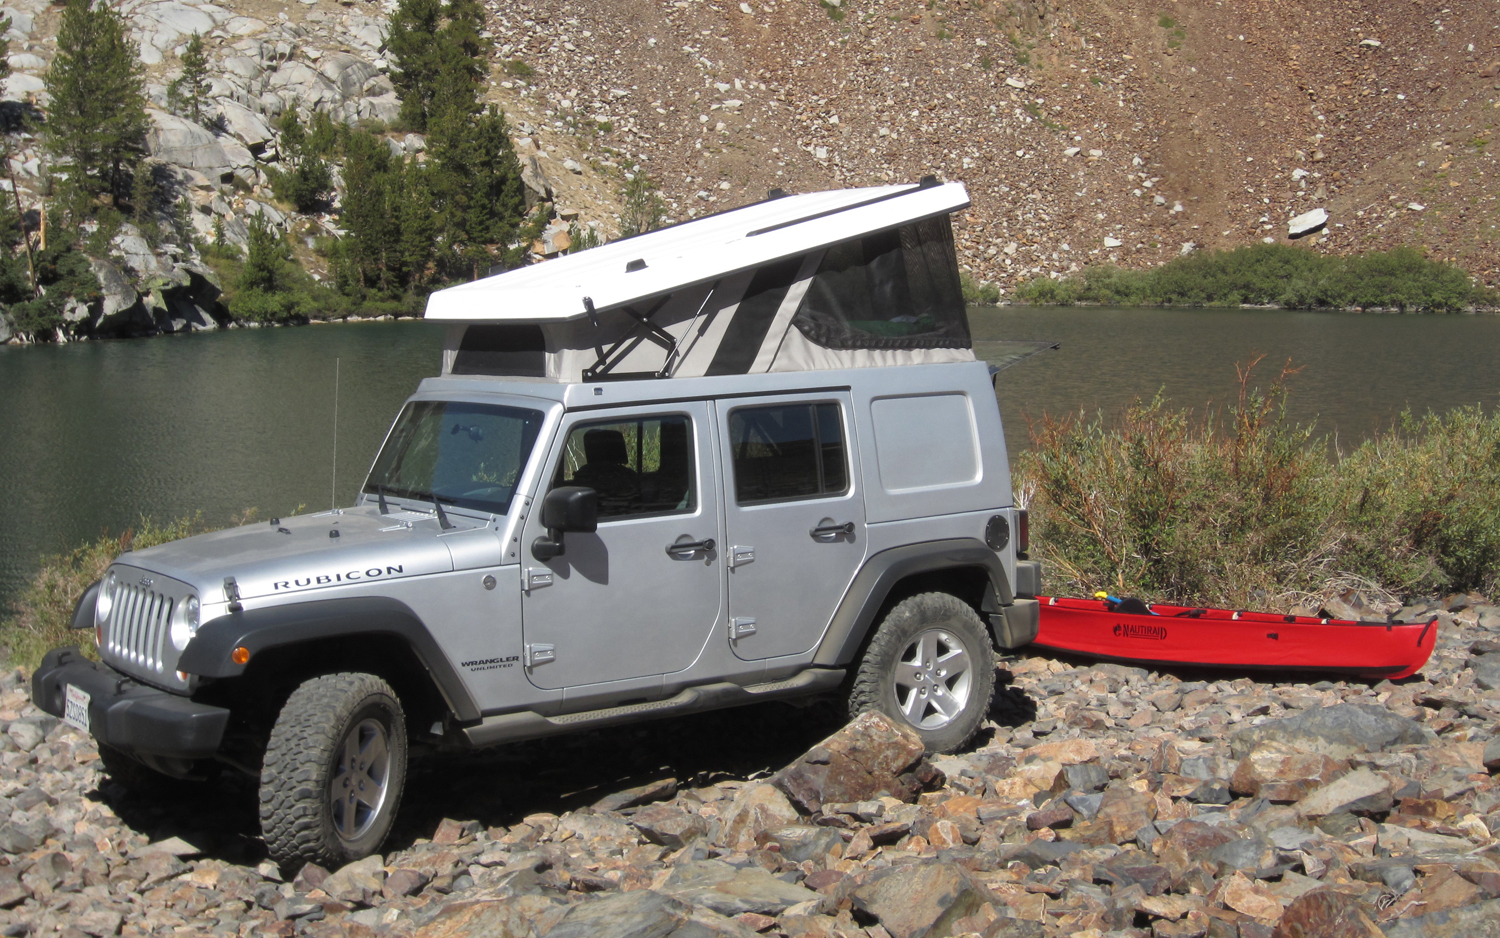 Ursa Minor Jeep Wrangler First Drive Photo & Image Gallery